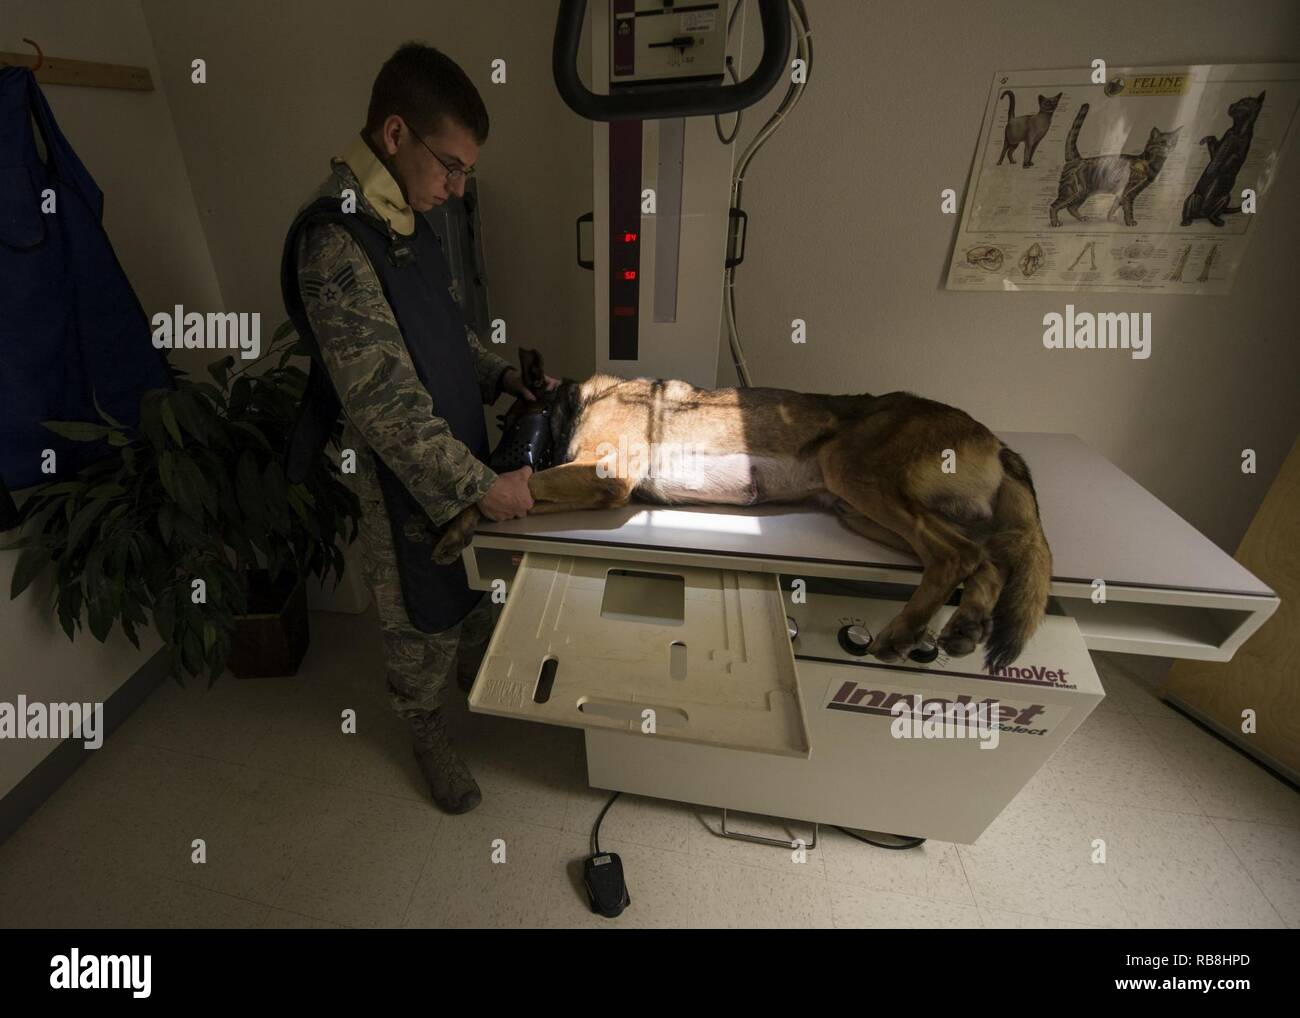 Staff Sgt. David, a military working dog handler with the 49th Security Forces Squadron, assists his military working dog, Dylan, during an x-ray scan at the veterinary clinic at Holloman Air Force Base, N.M., on Dec. 13, 2016. Four of Holloman's MWDs are battling health and medical related issues. To prevent and combat illness, the dogs routinely attend dental and medical checkups at the veterinary clinic on base. (Last names are being withheld due to operational requirements. U.S. Air Force - Stock Image